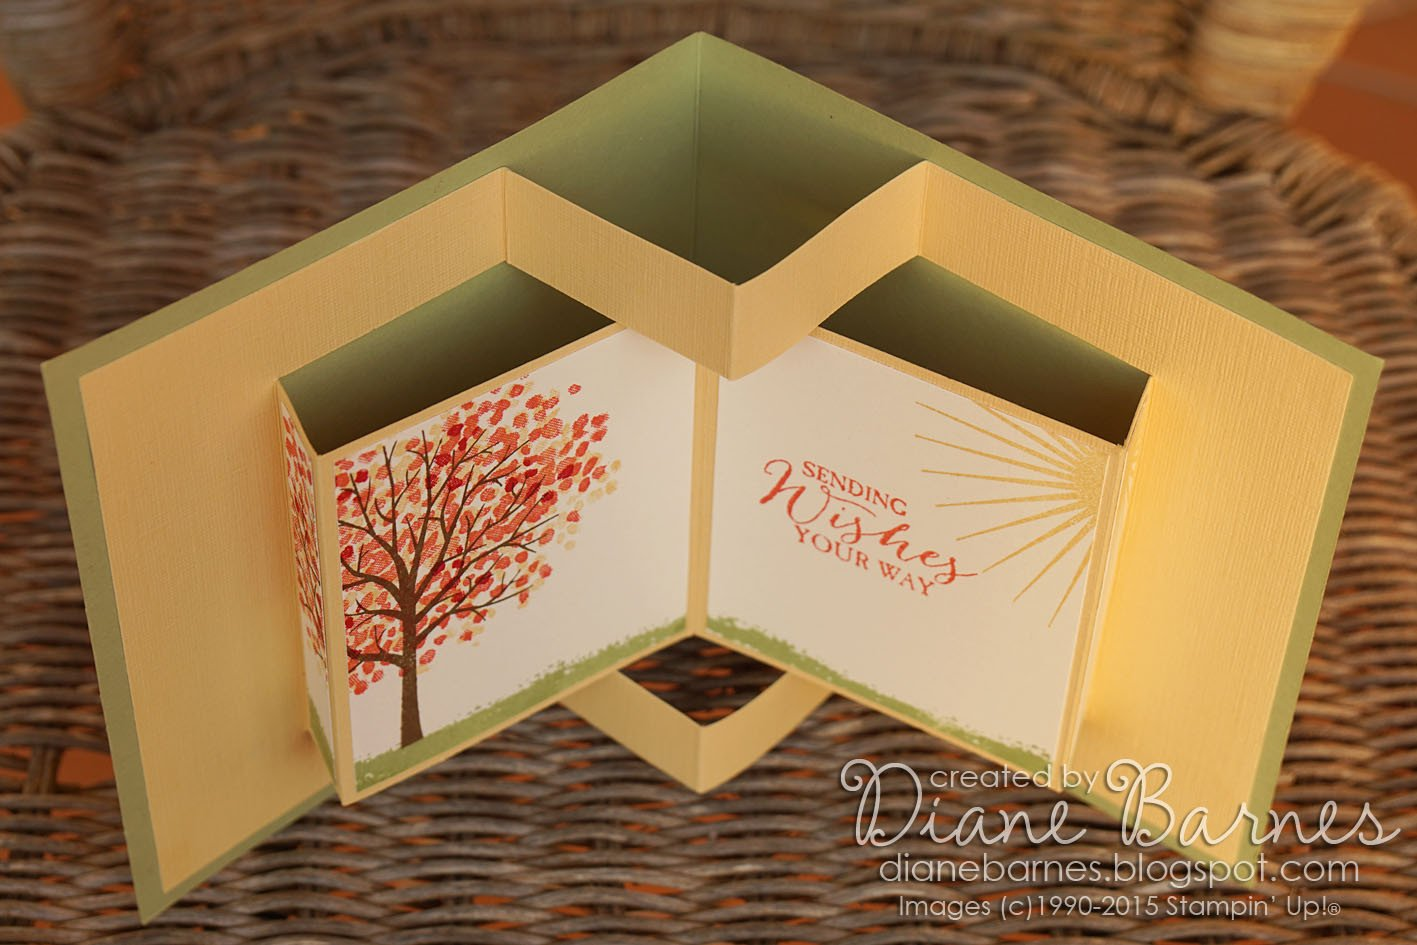 Pop Up Book Template Colour Me Happy Sheltering Tree Pop Up Book Card & Template